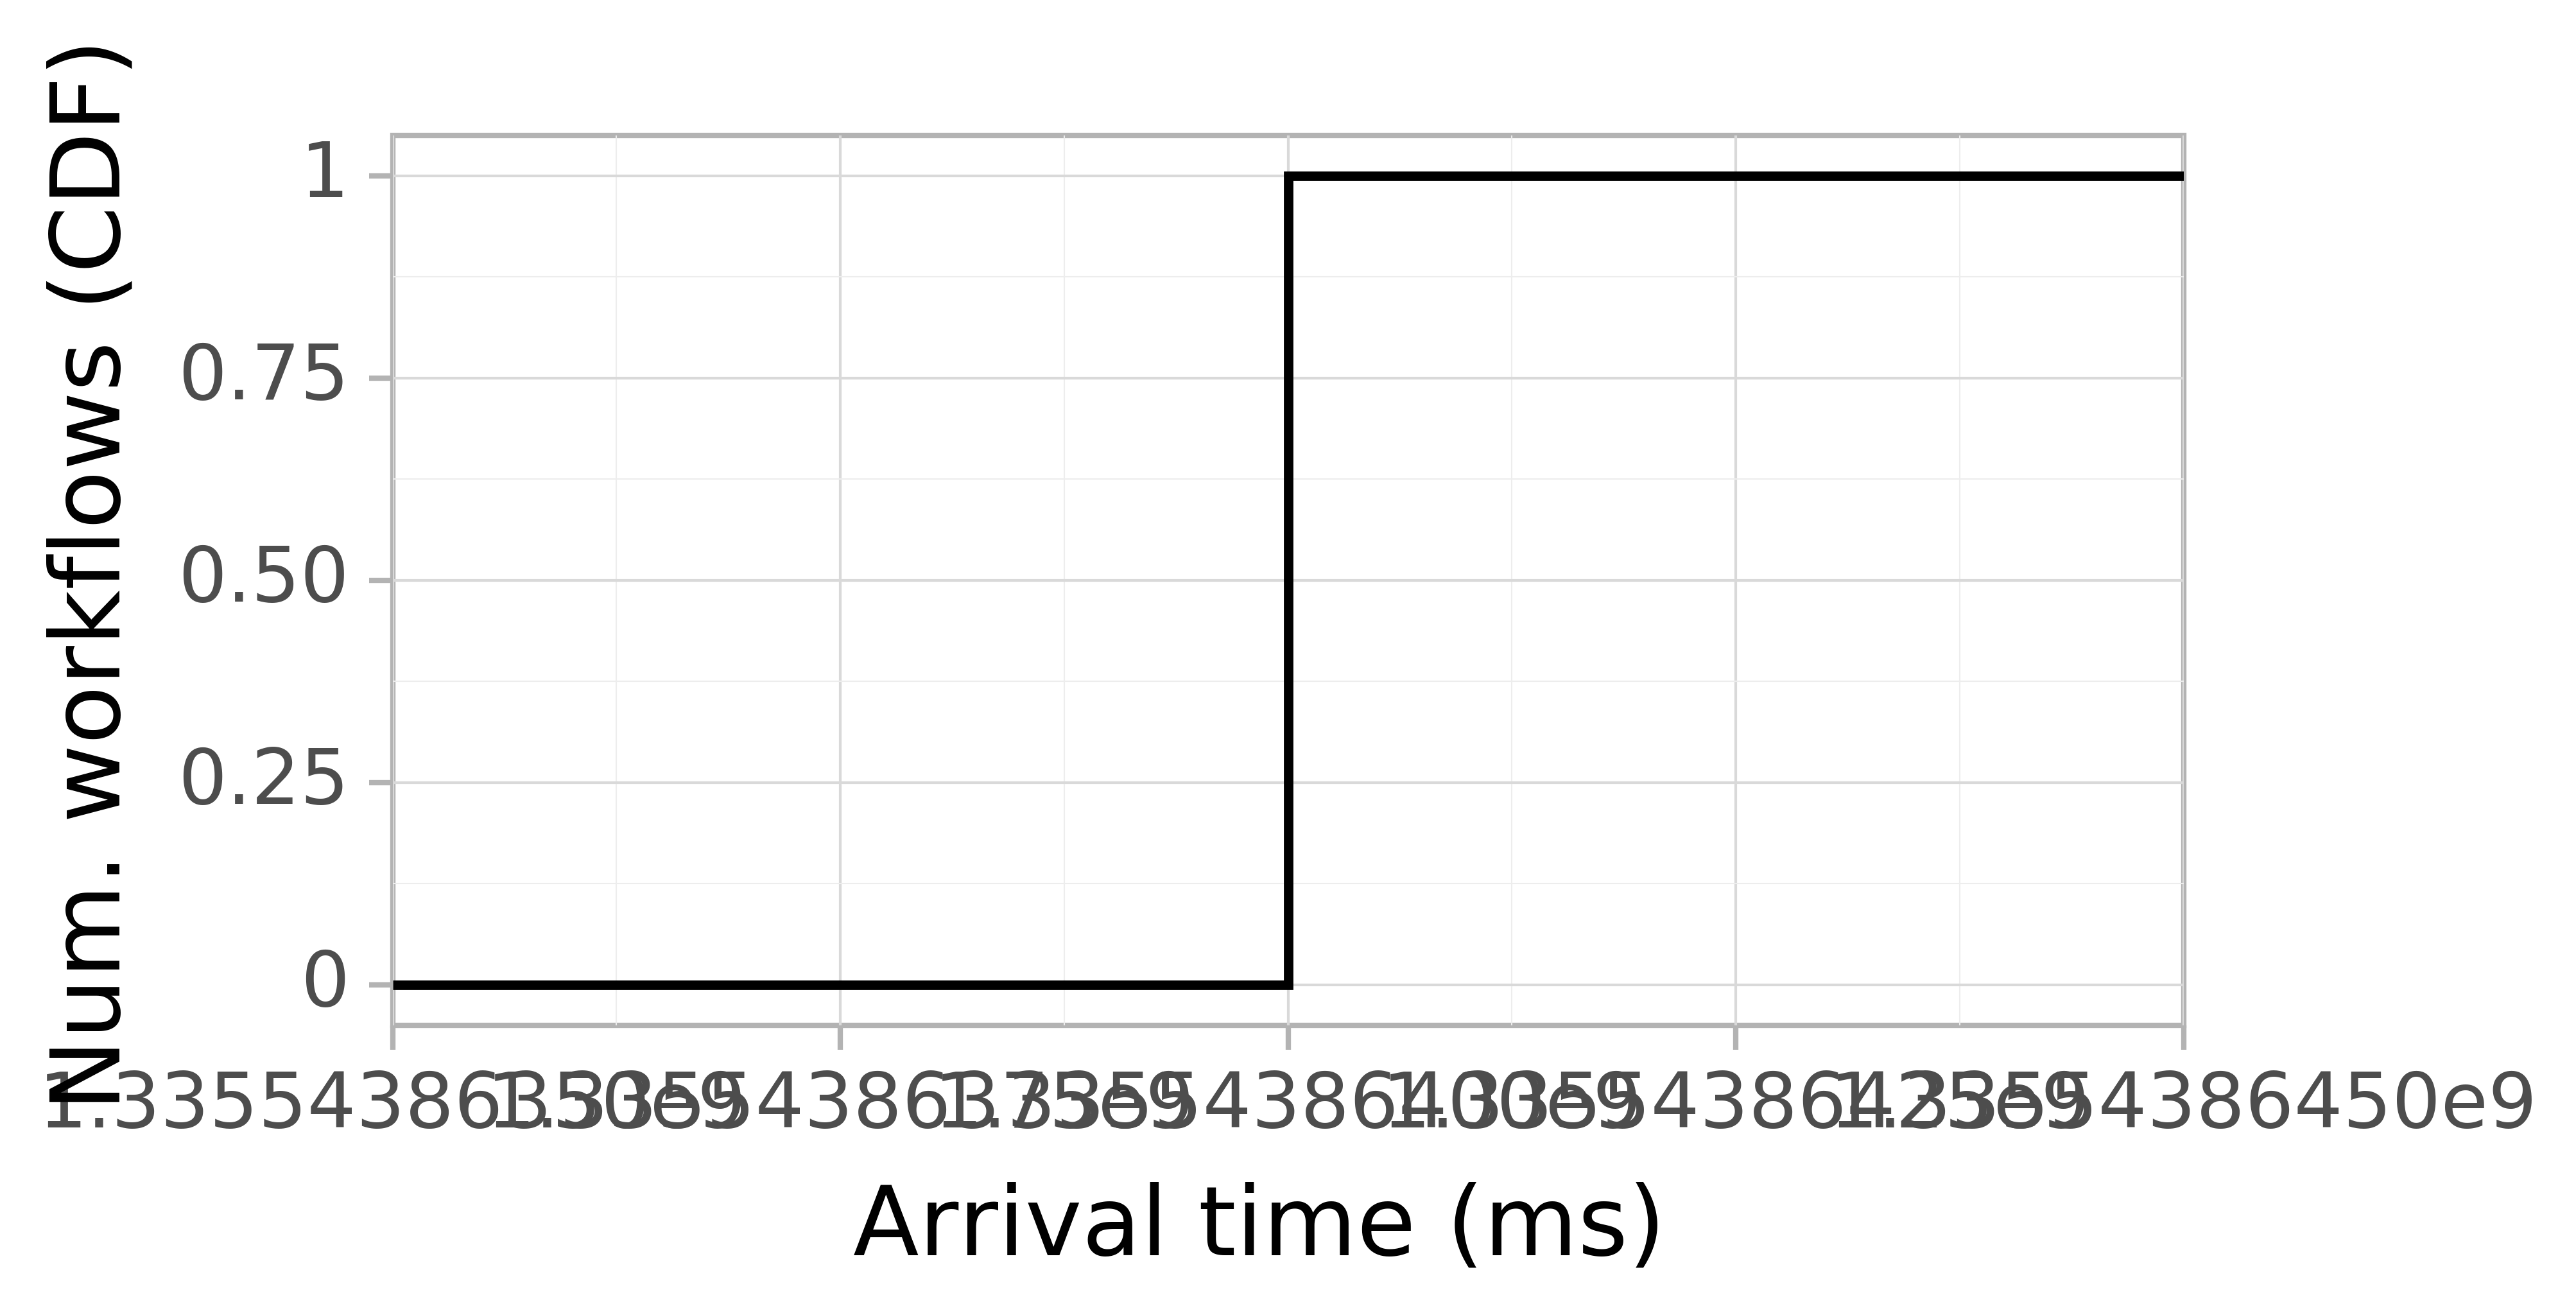 Job arrival CDF graph for the Pegasus_P5 trace.